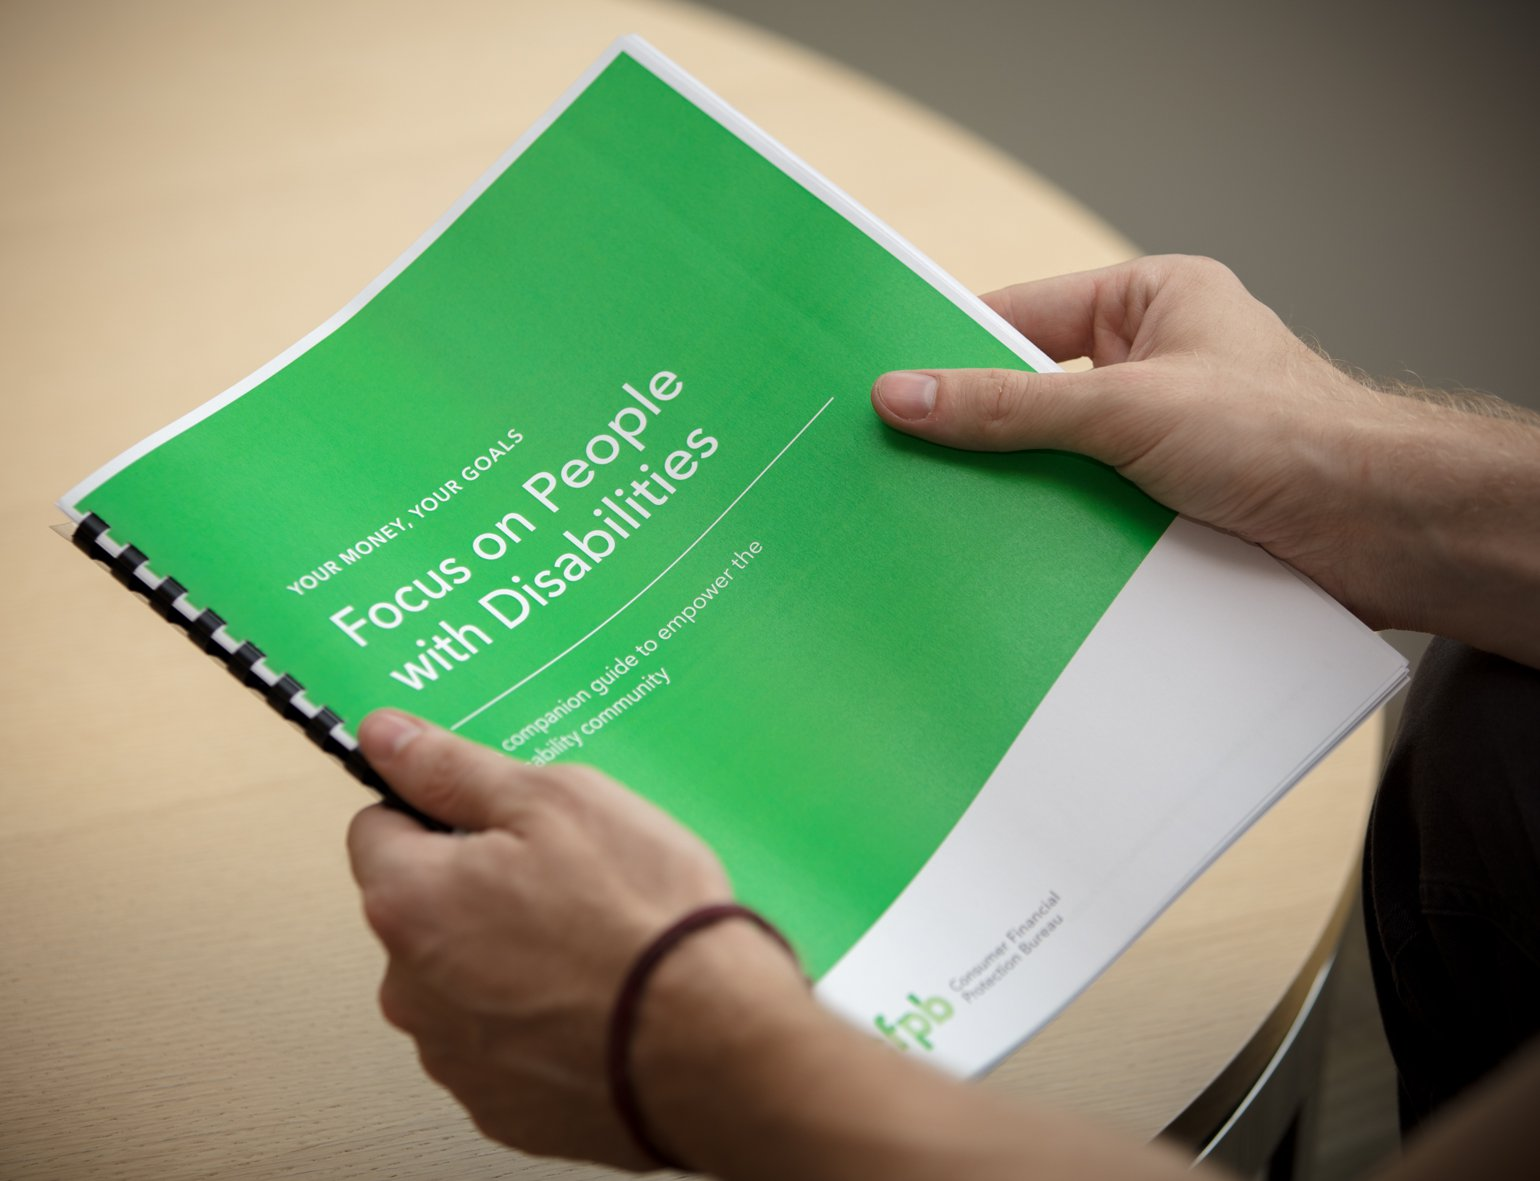 Photo of a person holding the Focus on People with Disabilities guide.